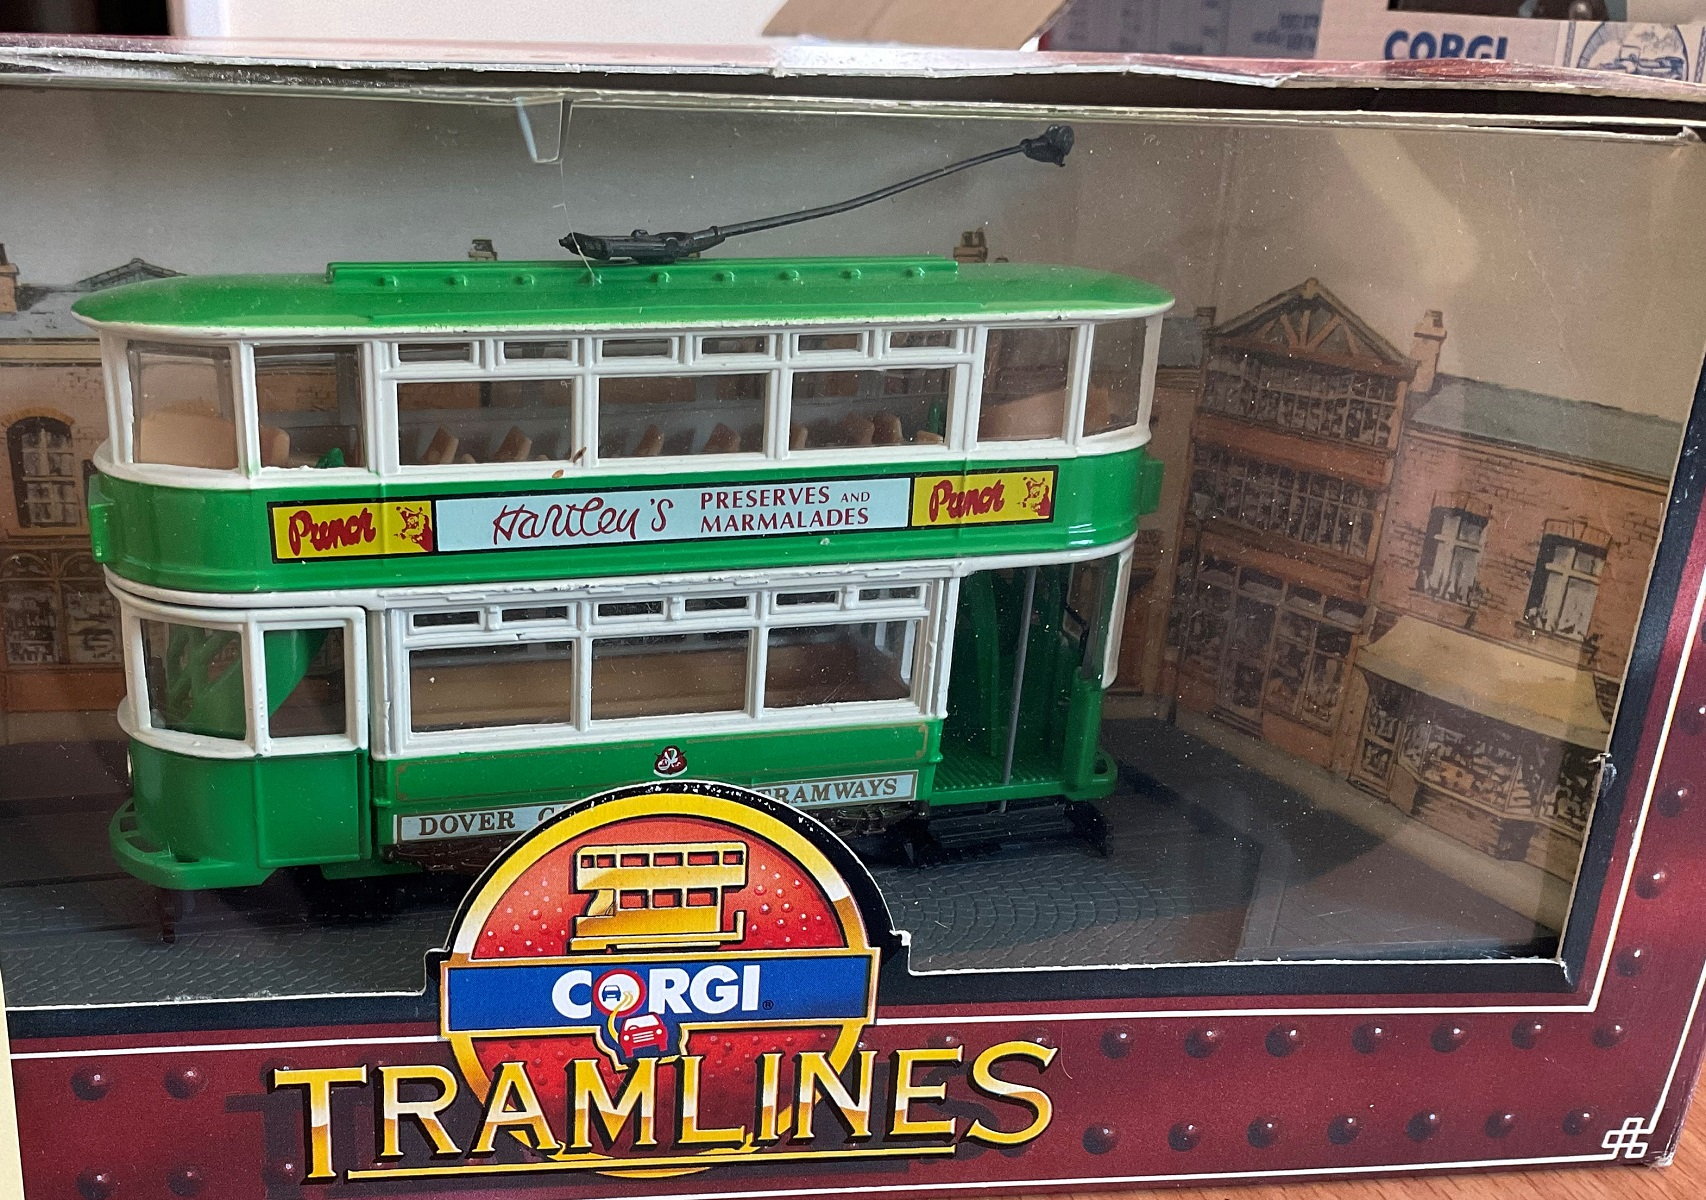 vintage Toys. CORGI collection. Die-cast and plastic Tram, in the original box, box slightly worn.